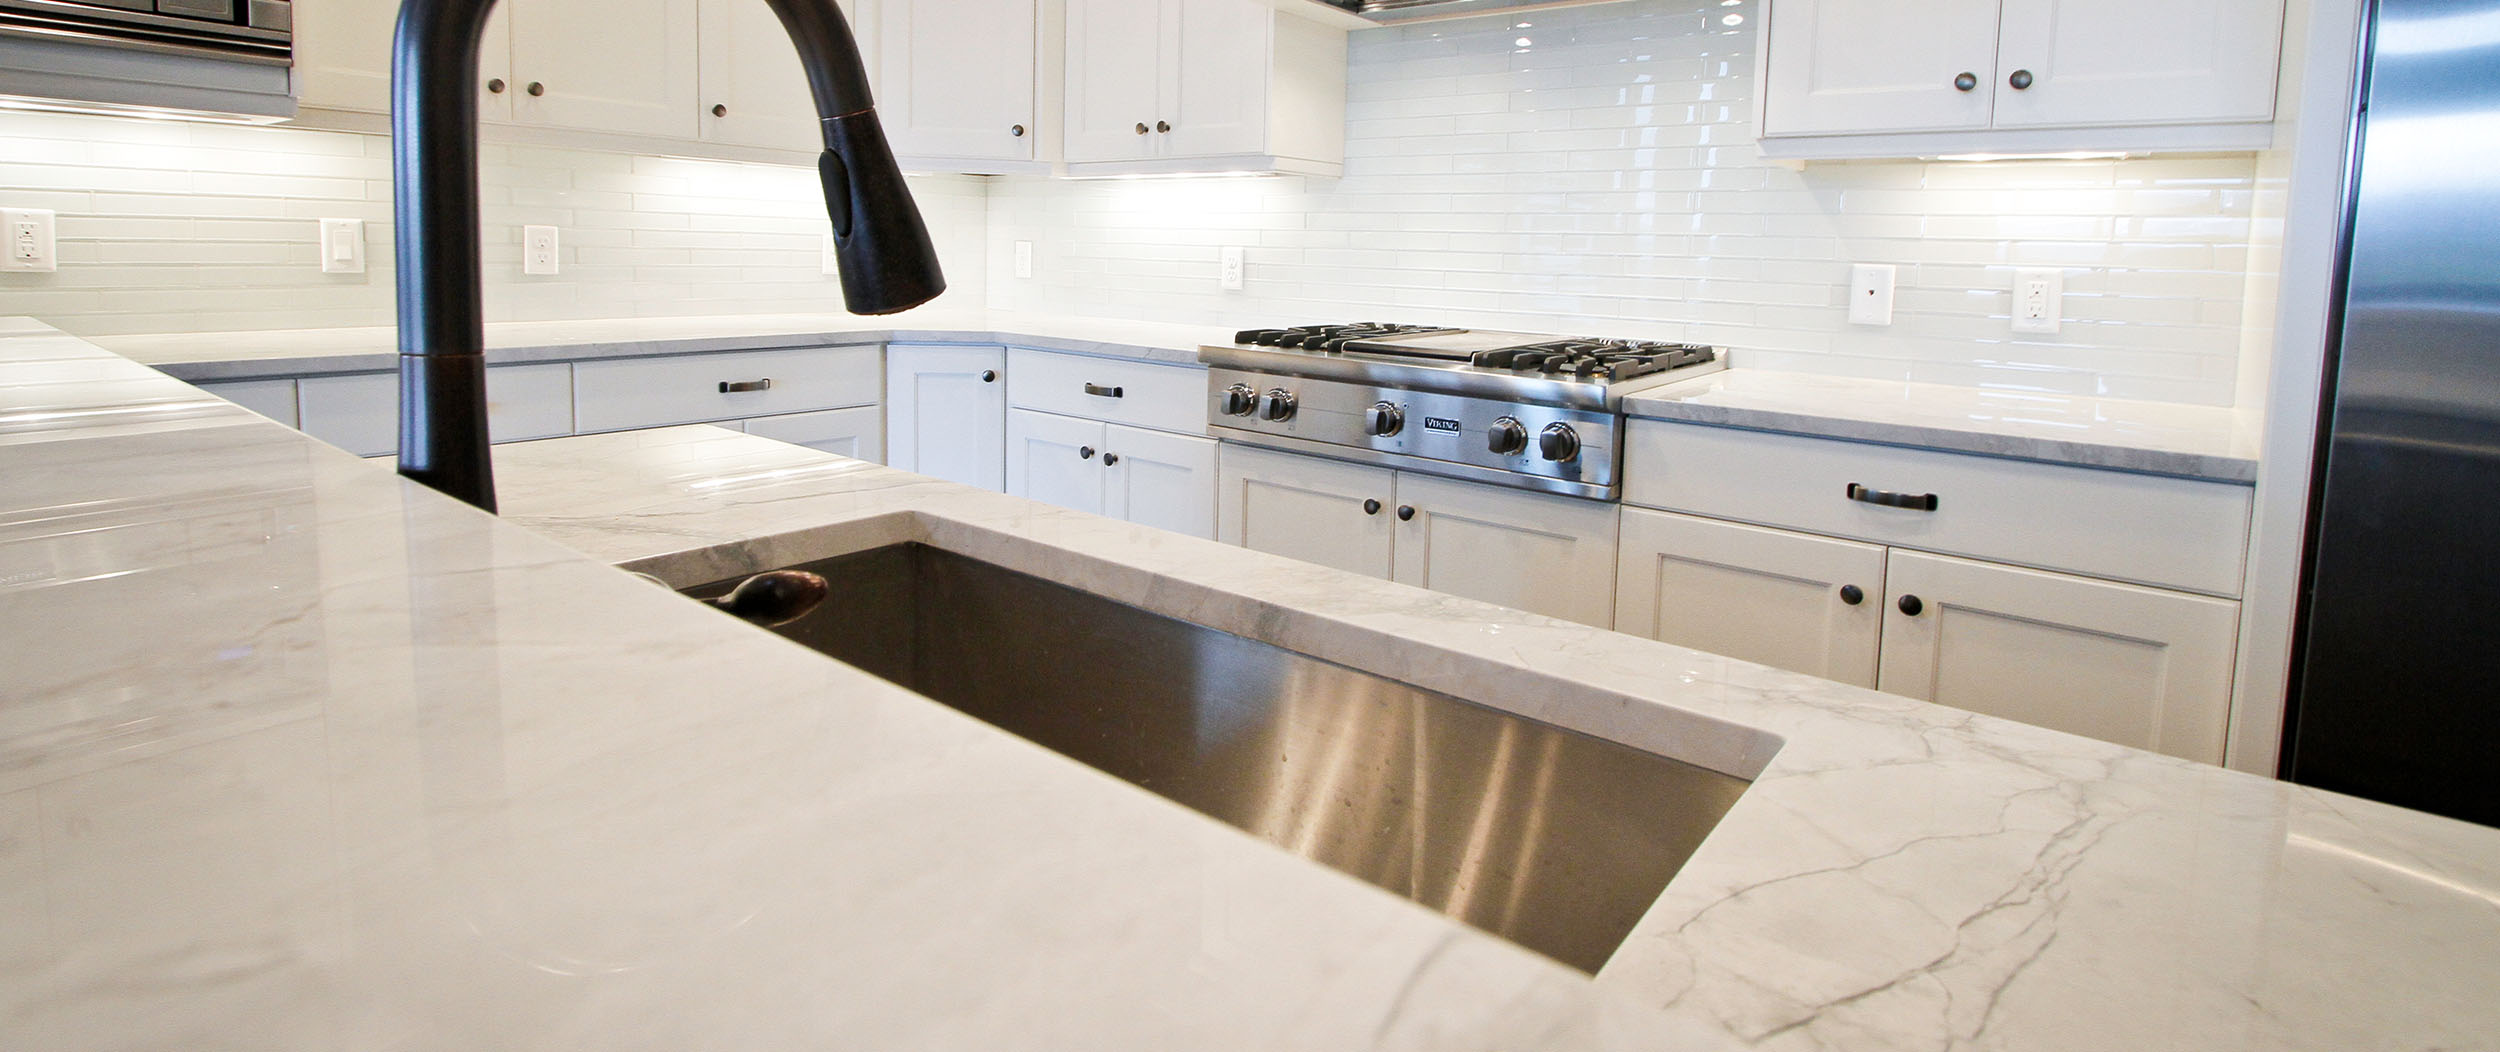 Discover our variety of   kitchen sinks    set an appointment